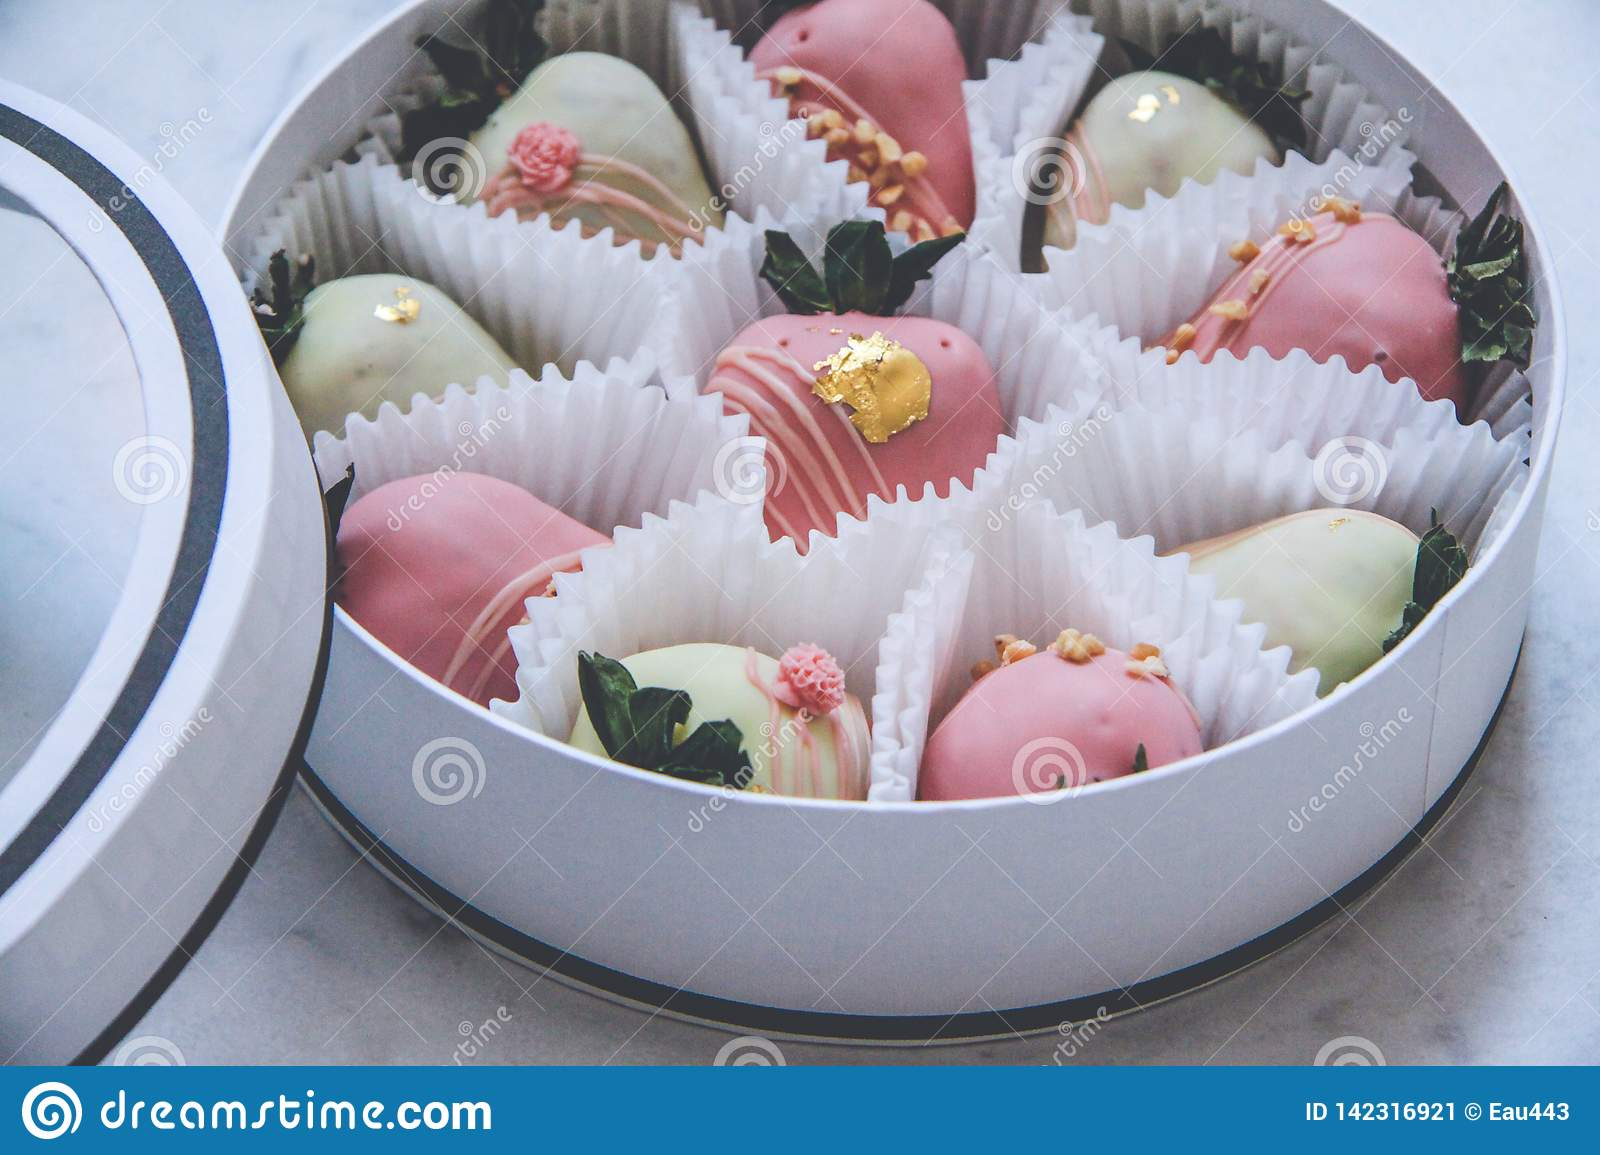 Gourmet Chocolate Covered Strawberries In A Round Gift Box Stock Image Image Of Chocolate Ingredient 142316921